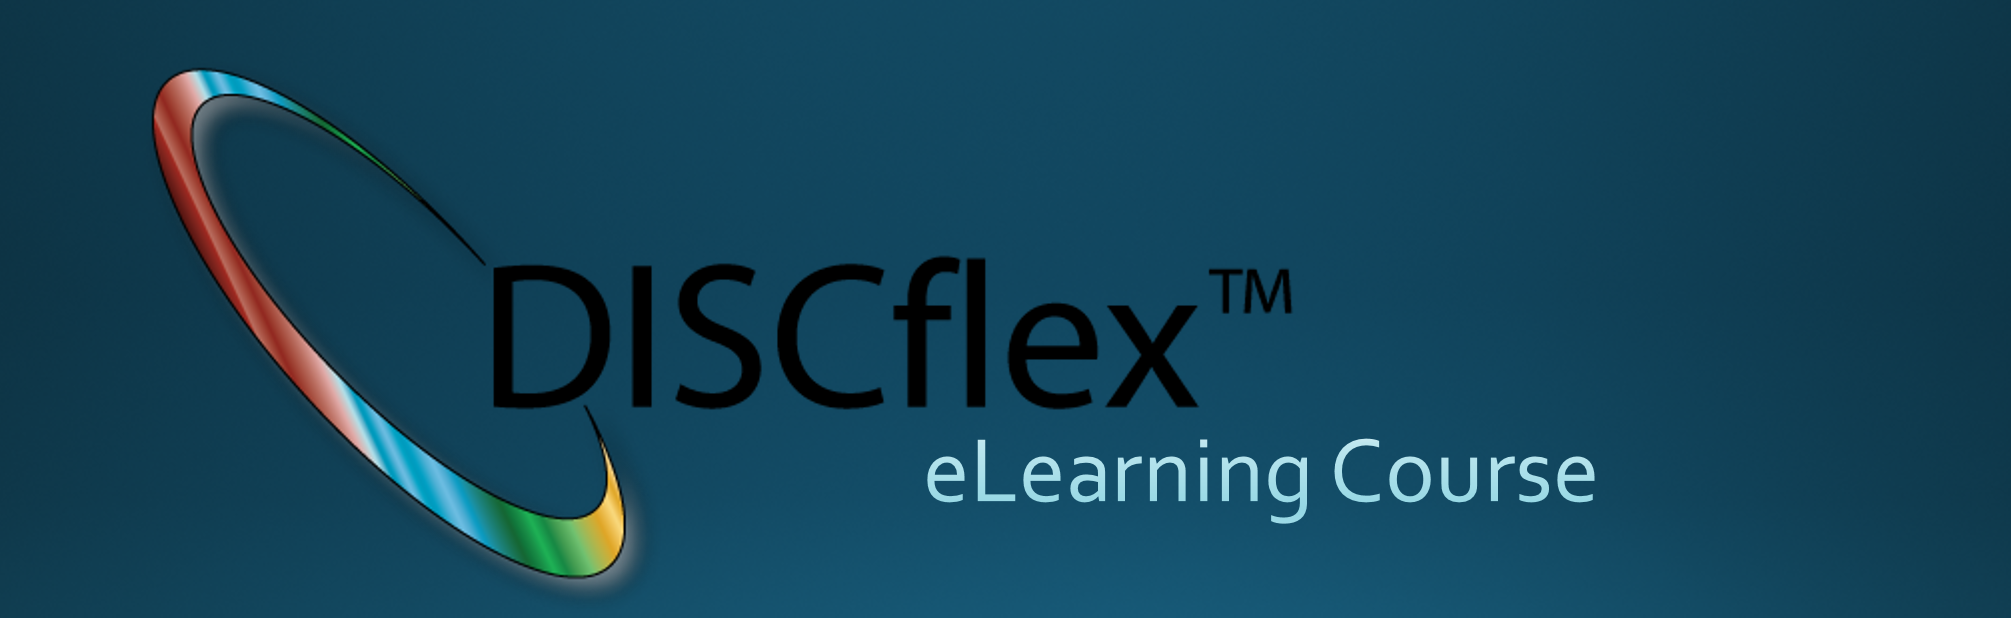 DISCflex eLearning Course